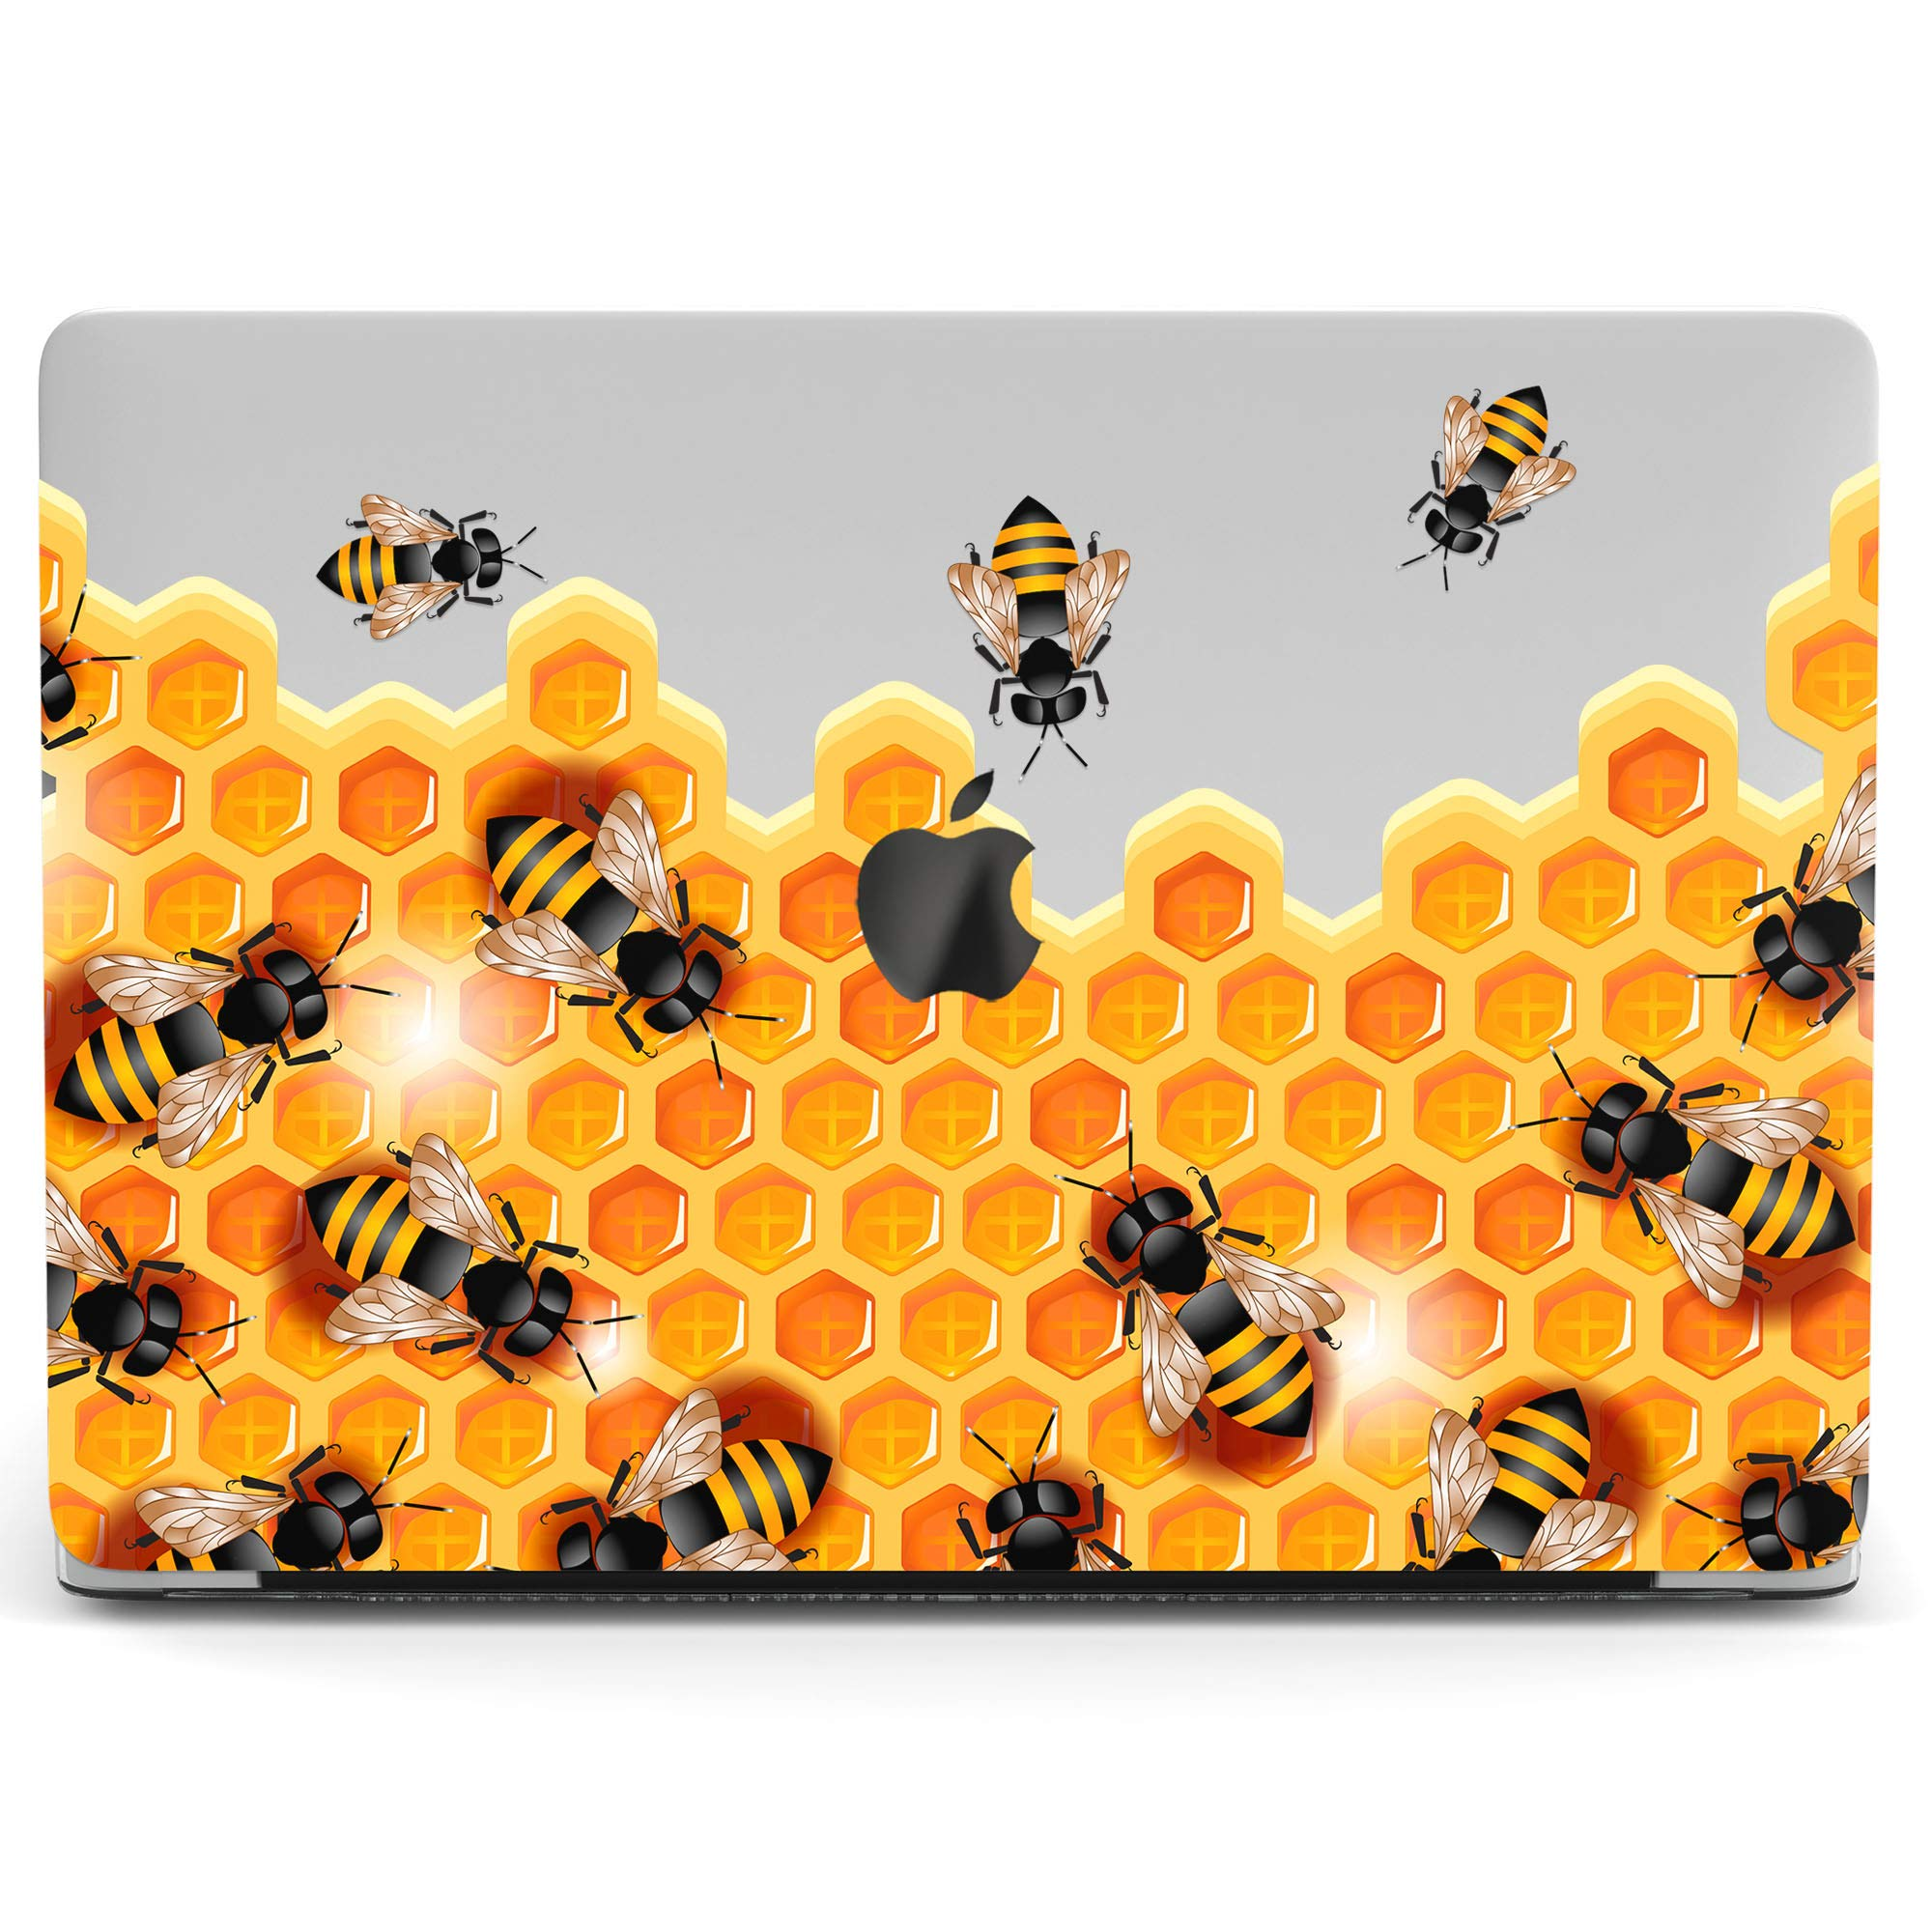 Wonder Wild Mac Retina Cover MacBook Pro 15 inch 12 11 Clear Hard Case Air 13 Apple 2019 Protective Laptop 2018 2017 2016 2015 Plastic Print Touch Bar Cute Animal Bee Honeycombs Teen Hive Kids Yellow